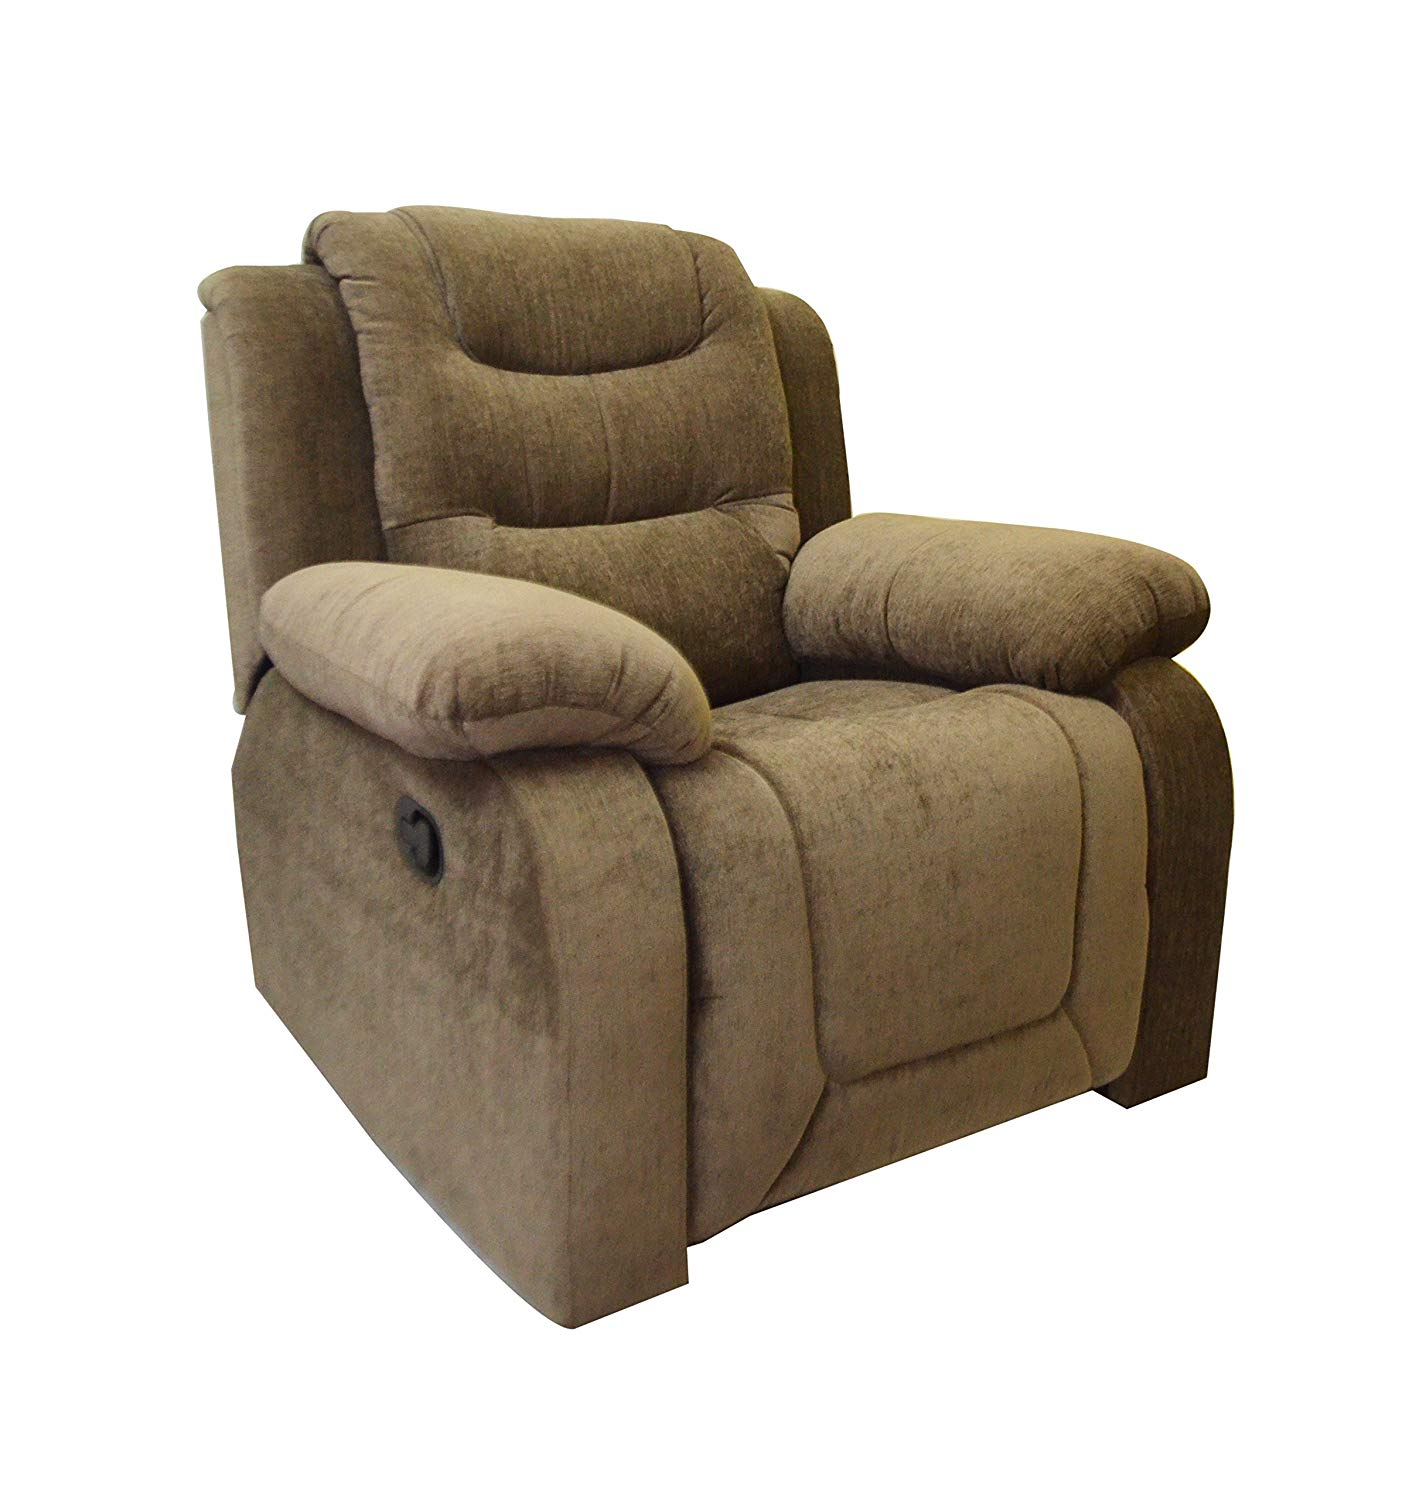 AE Designs in Olive Brown Fabric Rocking Recliner